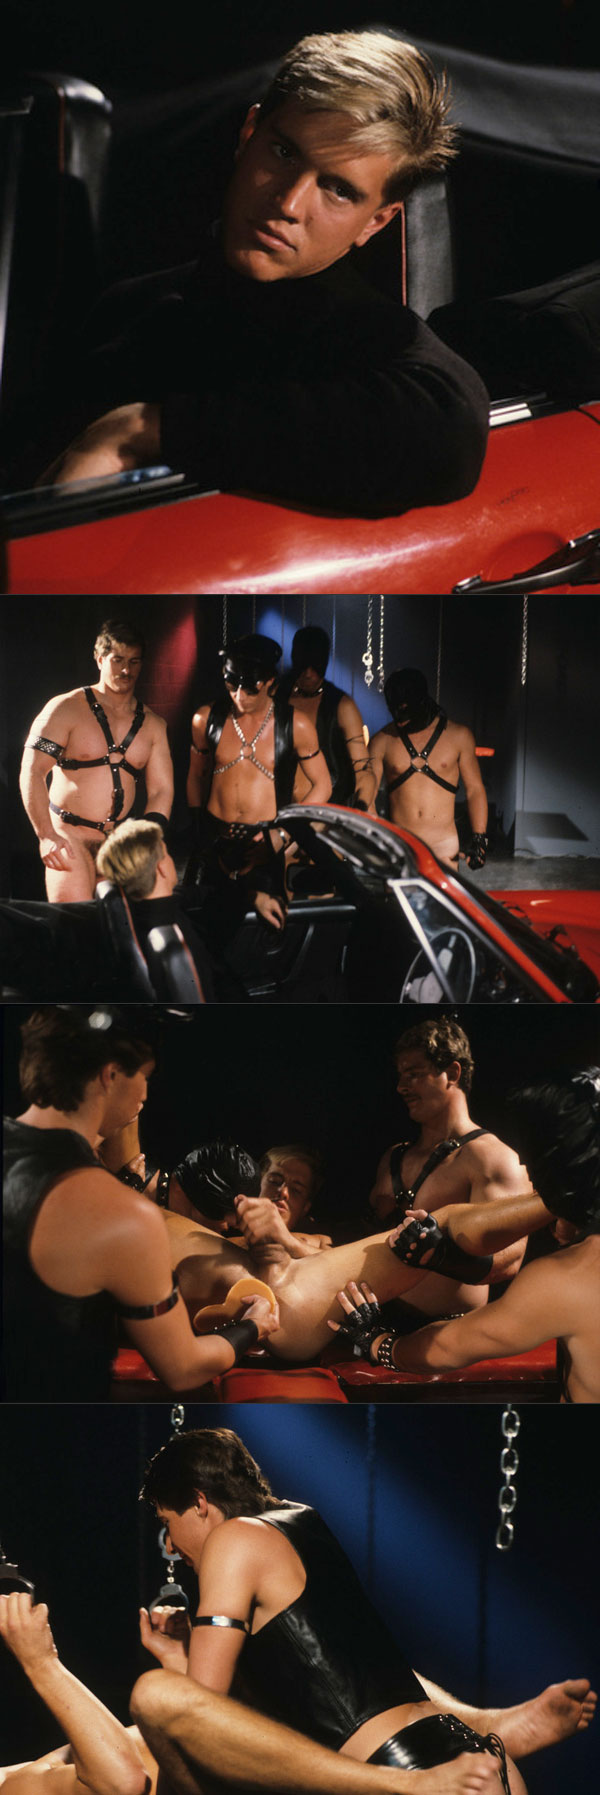 Kevin Williams gets gang banged in Hot Rods: Young & Hung 2